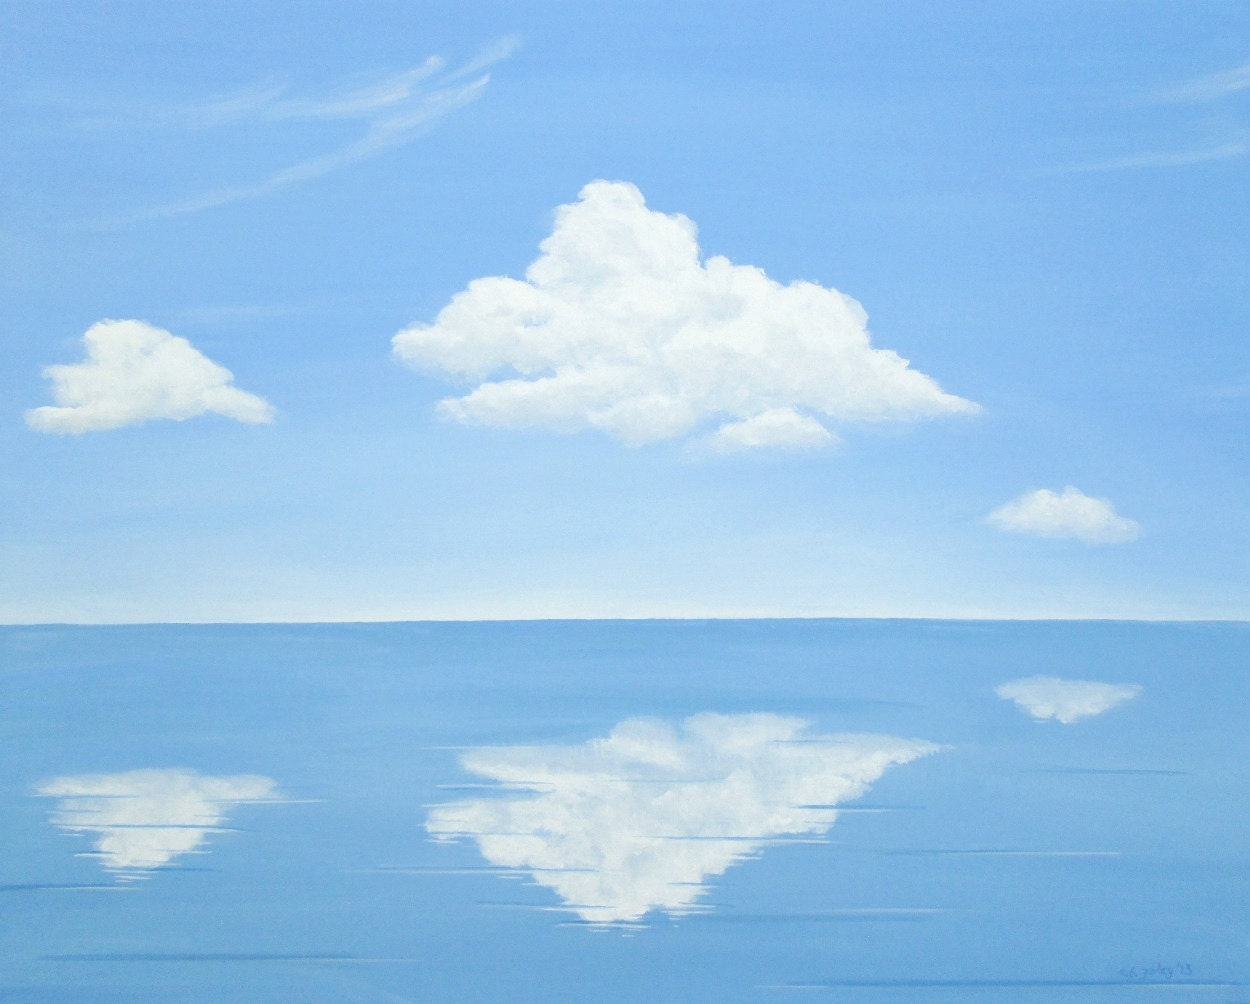 calm sea painting, quiet ocean painting, relaxing ocean art, blue ocean painting, calm seas, calm water painting, water reflection art, calm seascape fine art, water art, fluffy clouds painting, clouds water reflection, blue ocean painting